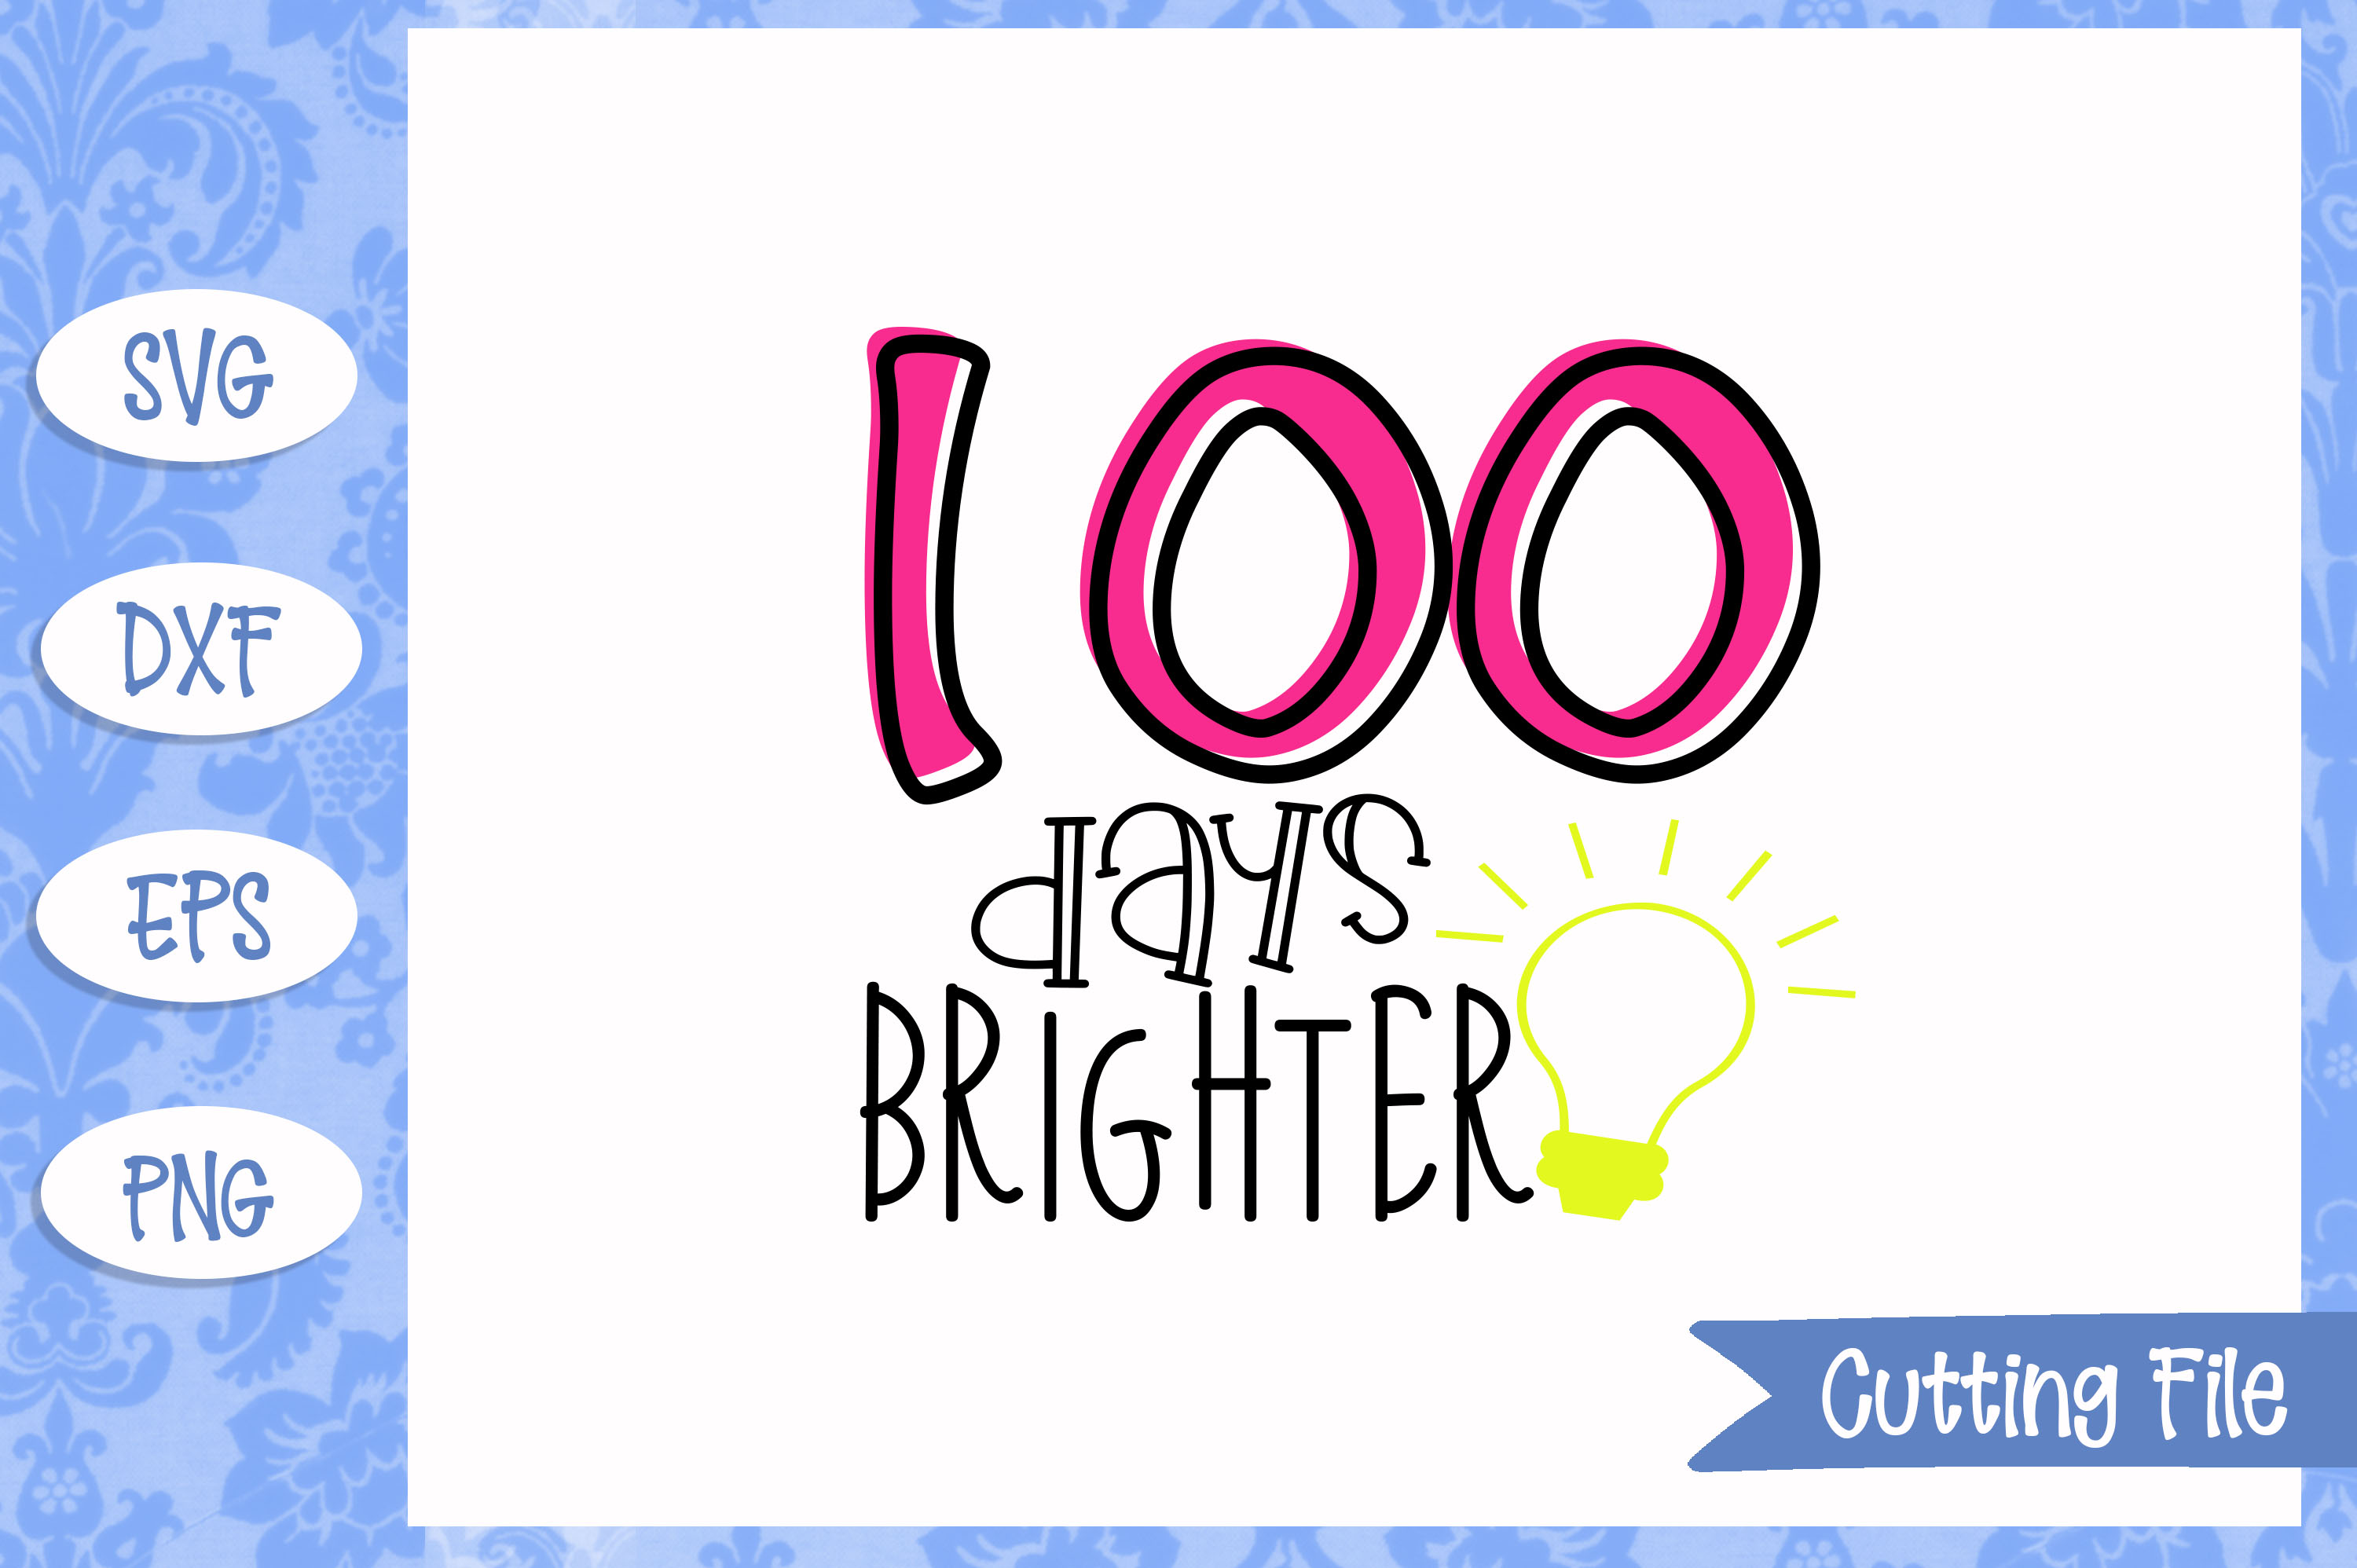 100 days brighter SVG File example image 1